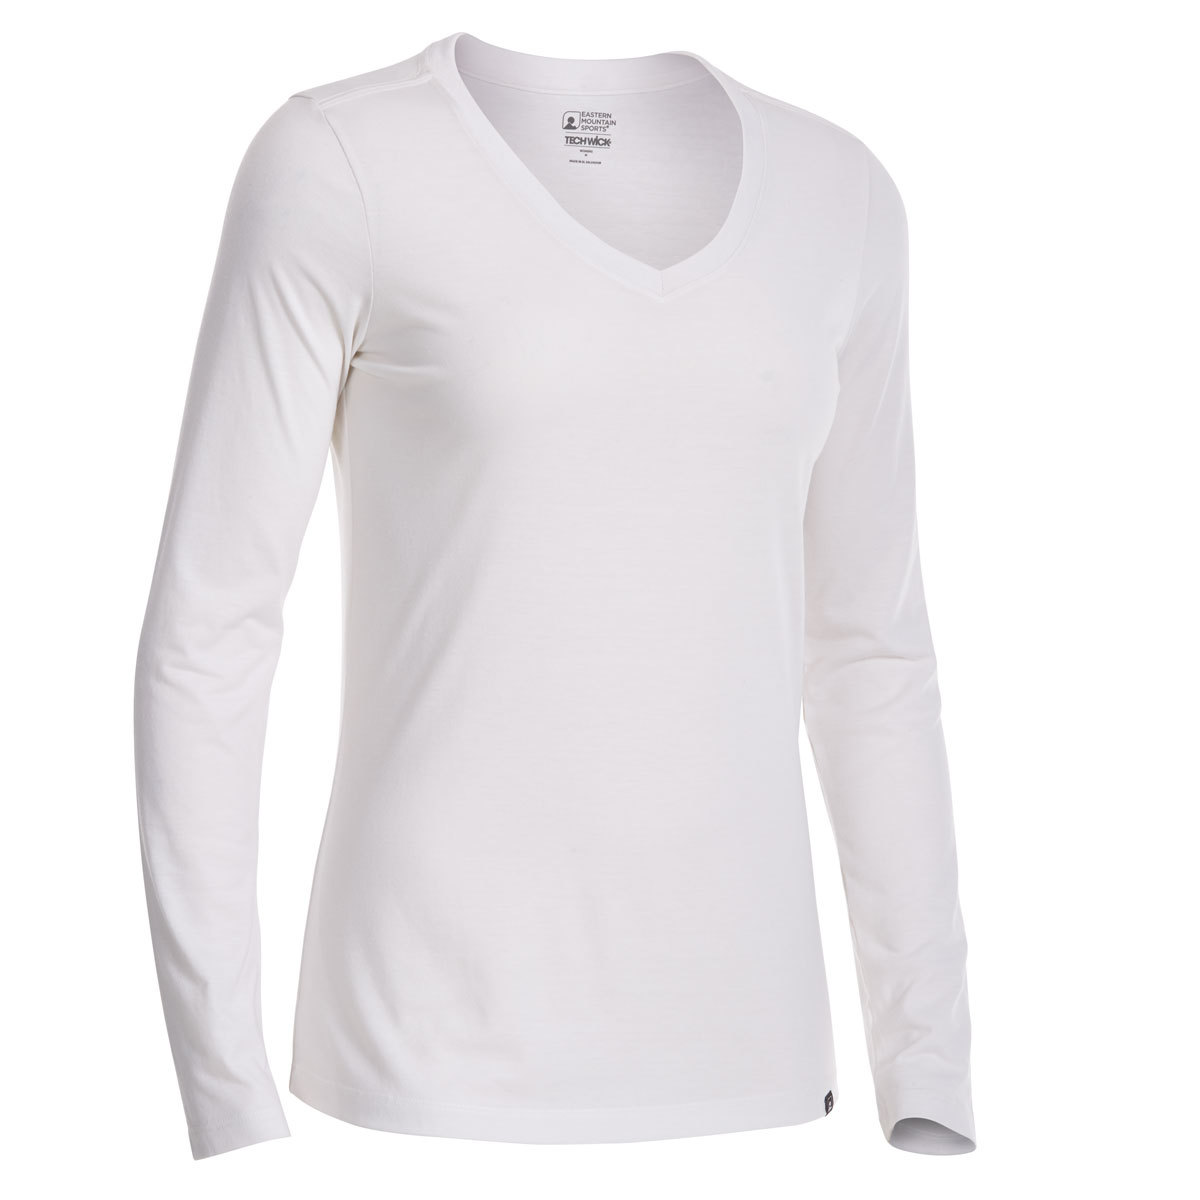 Ems Women's Techwick Vital V-Neck Long-Sleeve Tee - White, XL